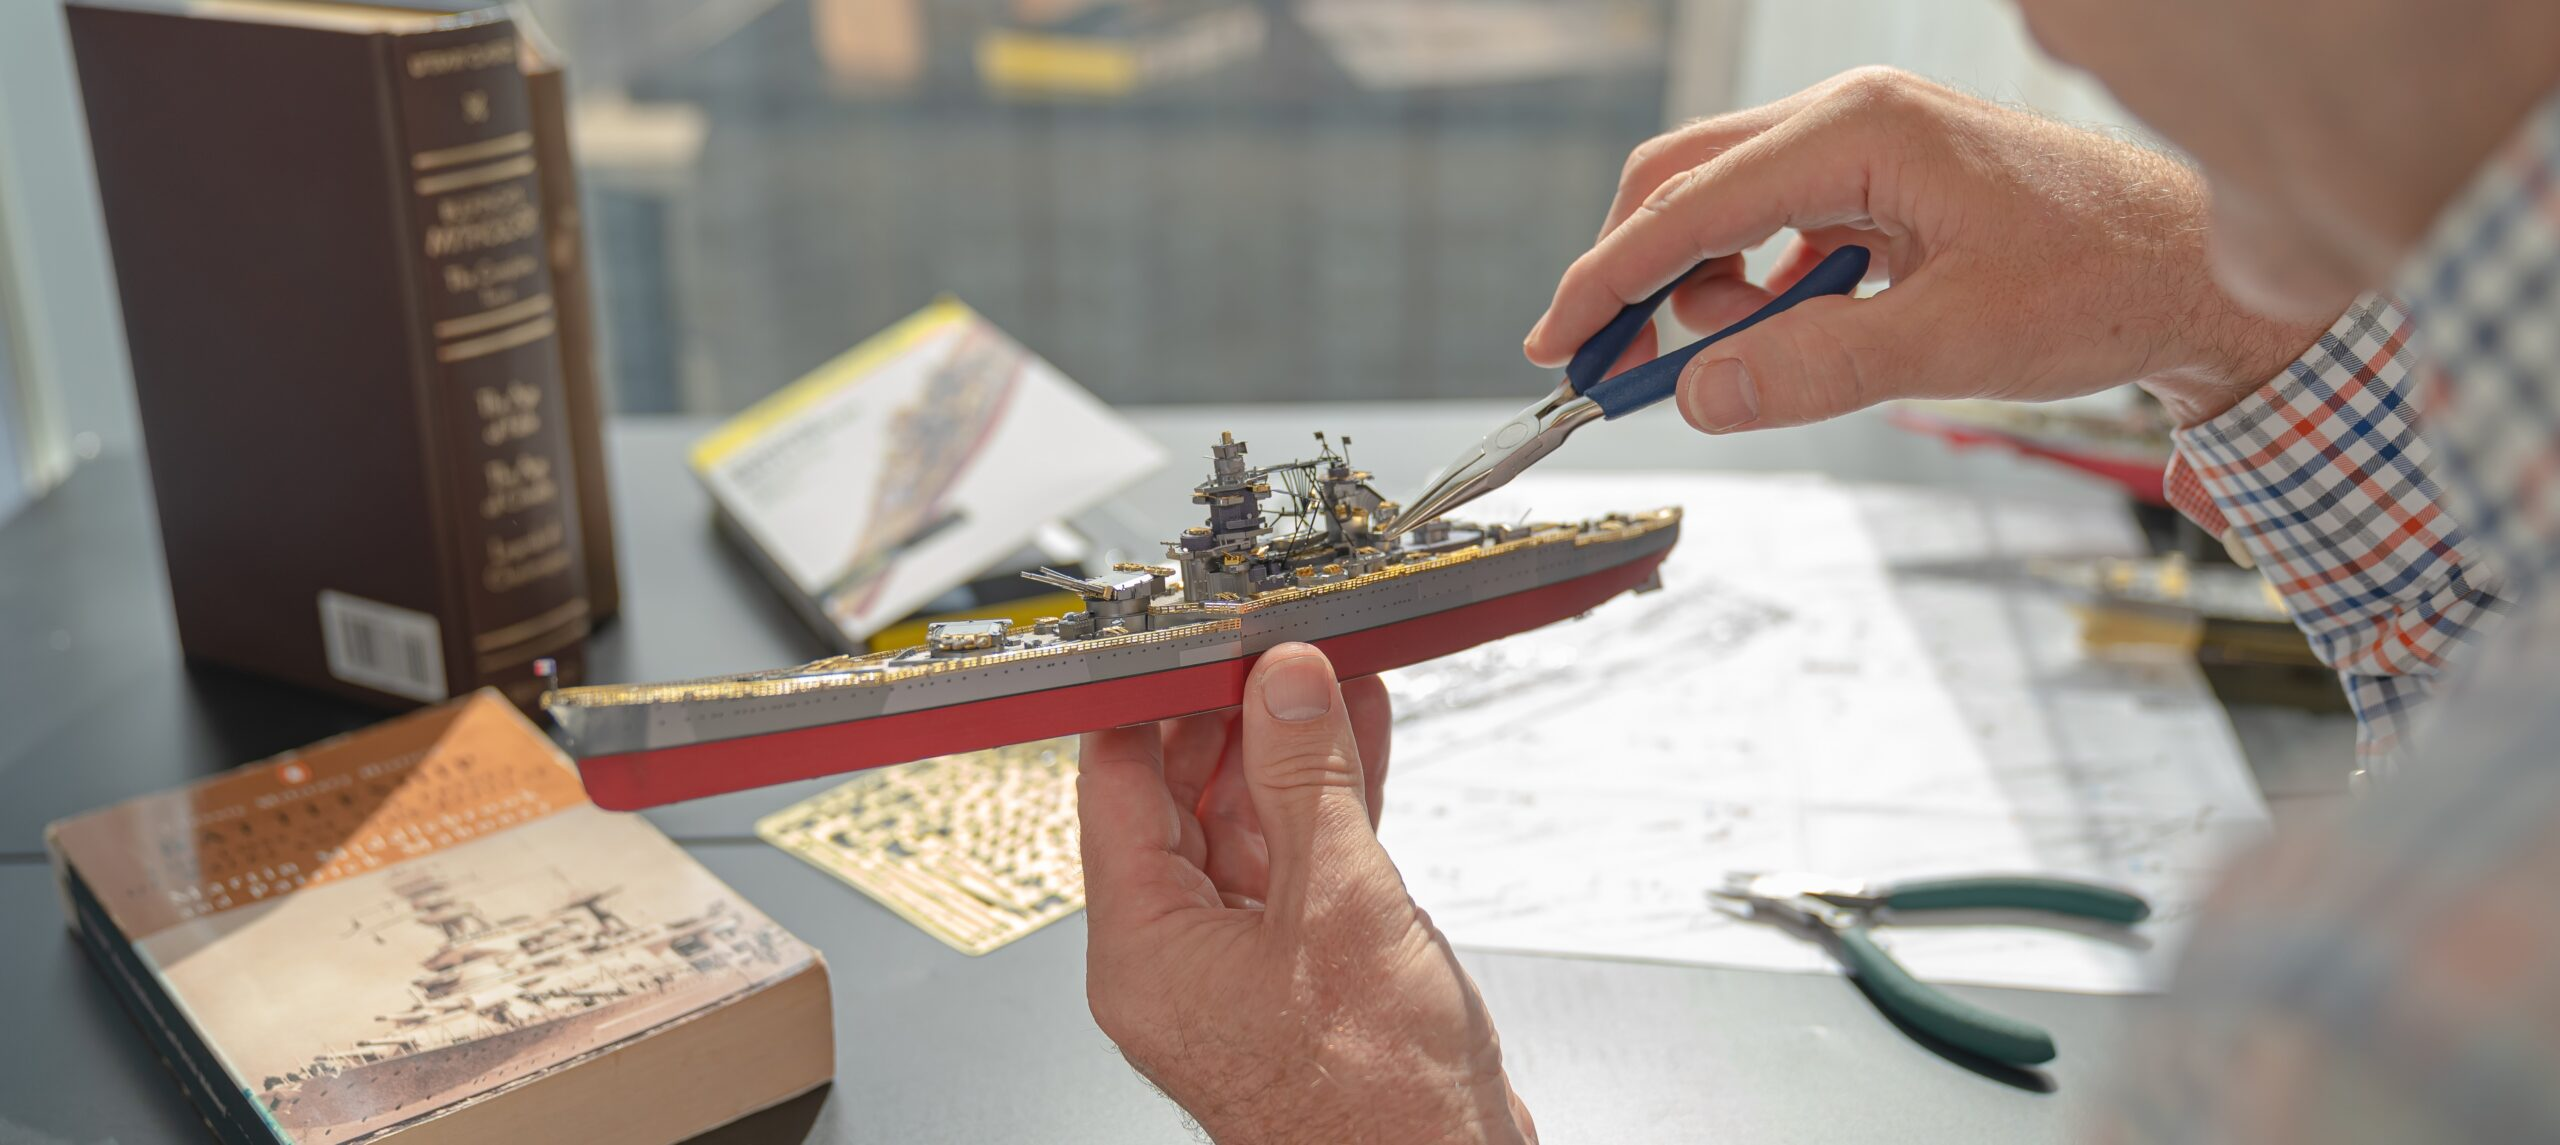 Model kits for adults